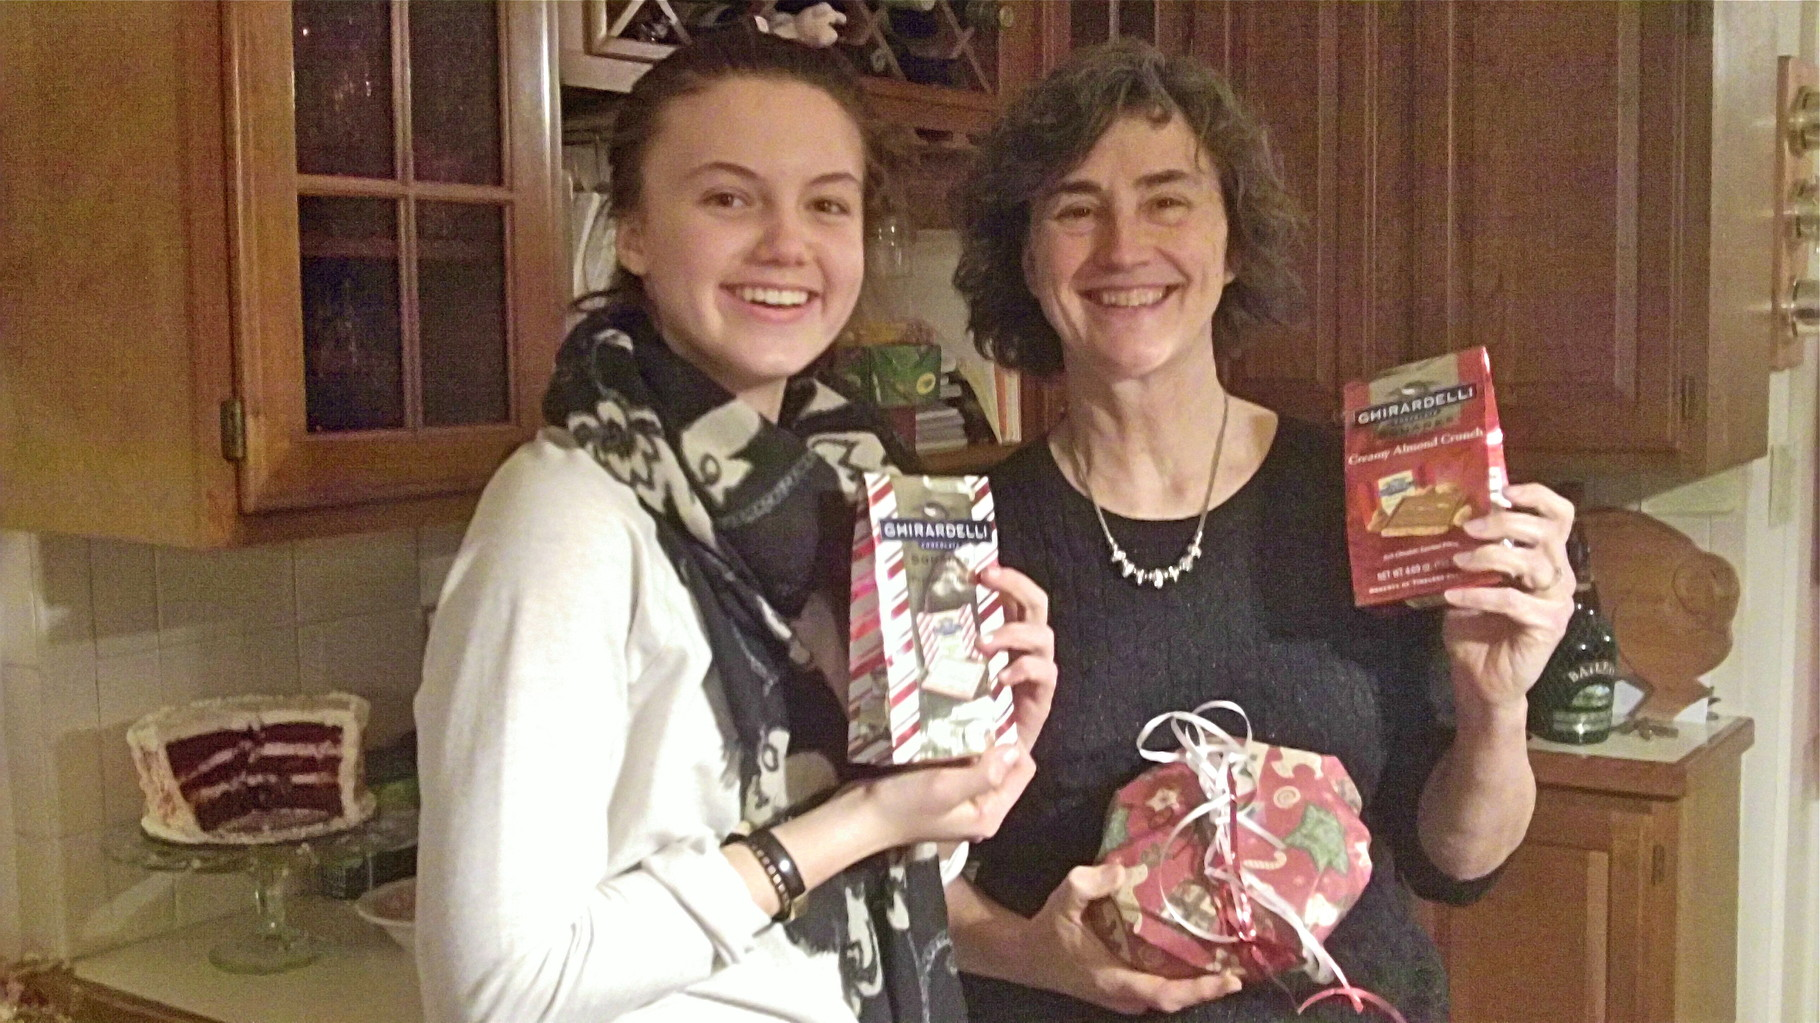 Kate Kagel & Ann Wagner win the 2 handed wrapping competition